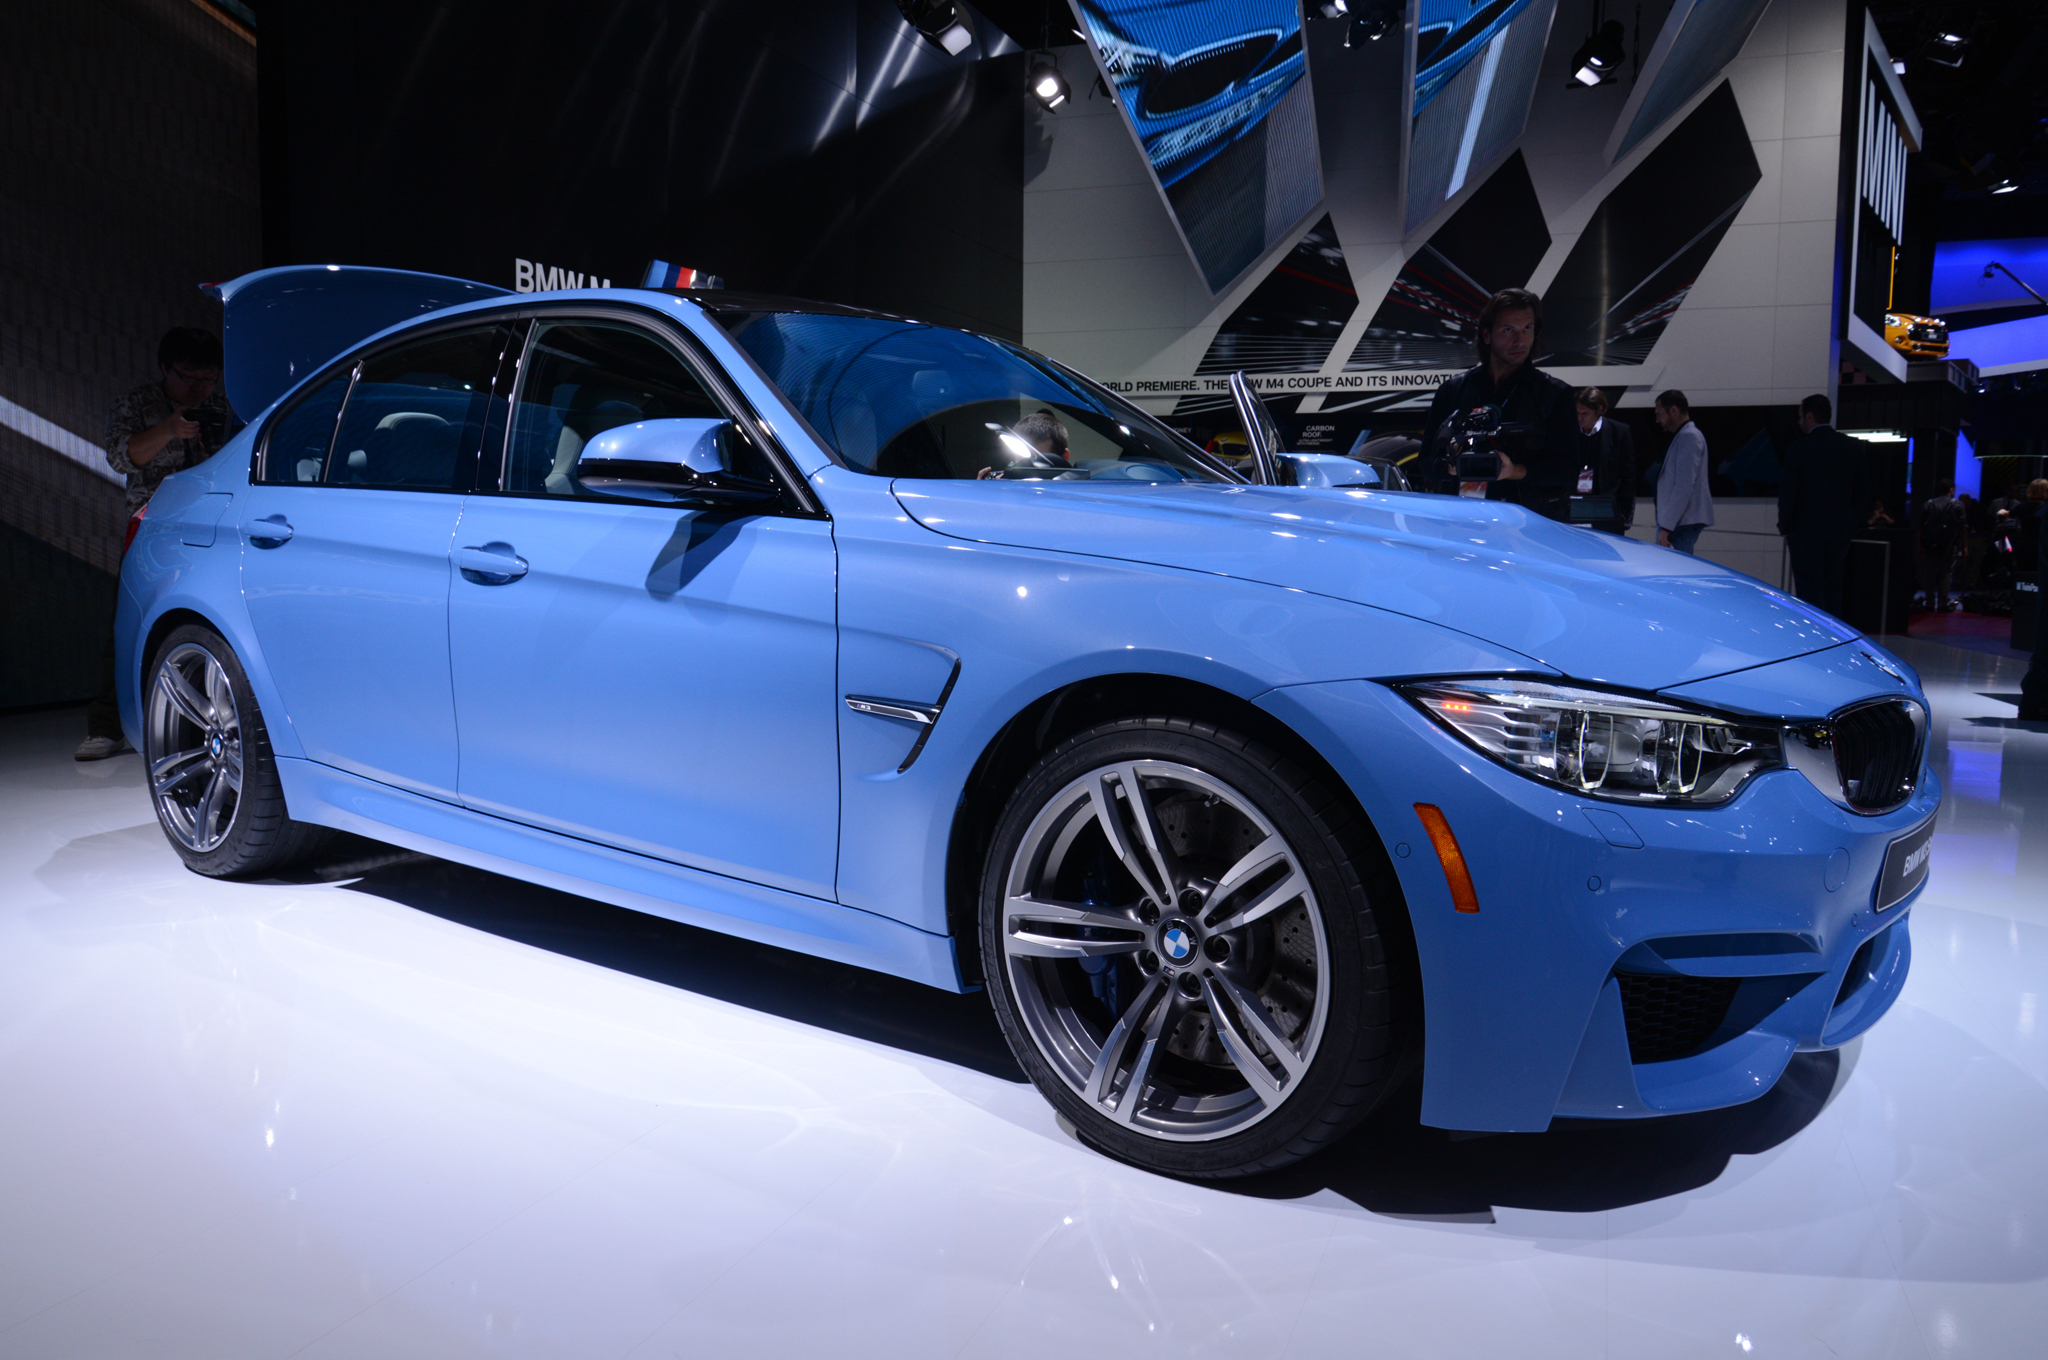 2015 Bmw M3 Car Show (Photo 43 of 55)